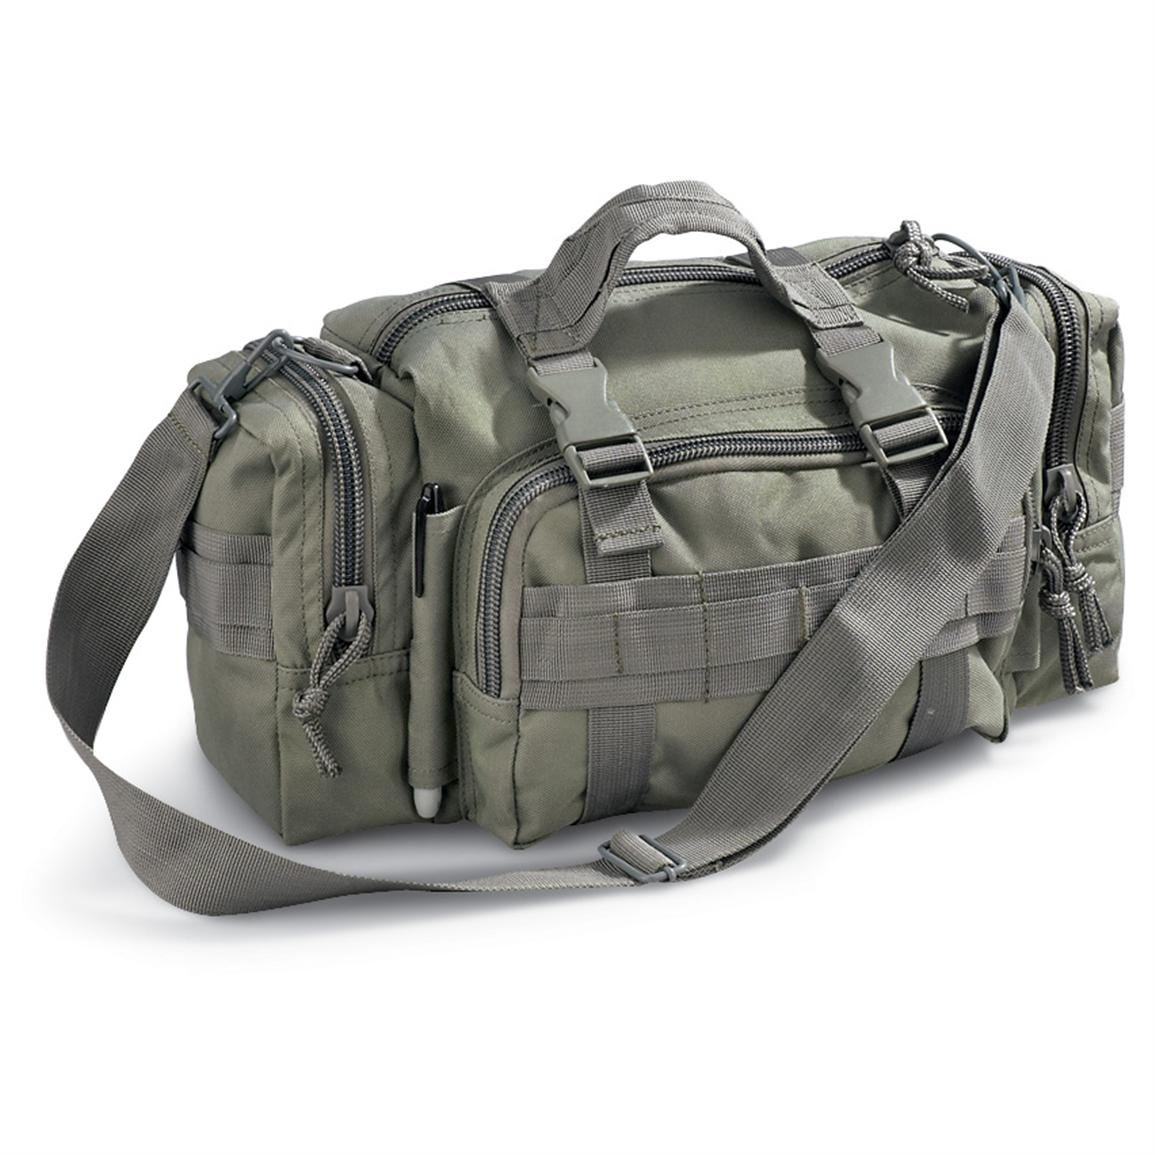 Voodoo Tactical Military Style 3 Way Deployment Bag